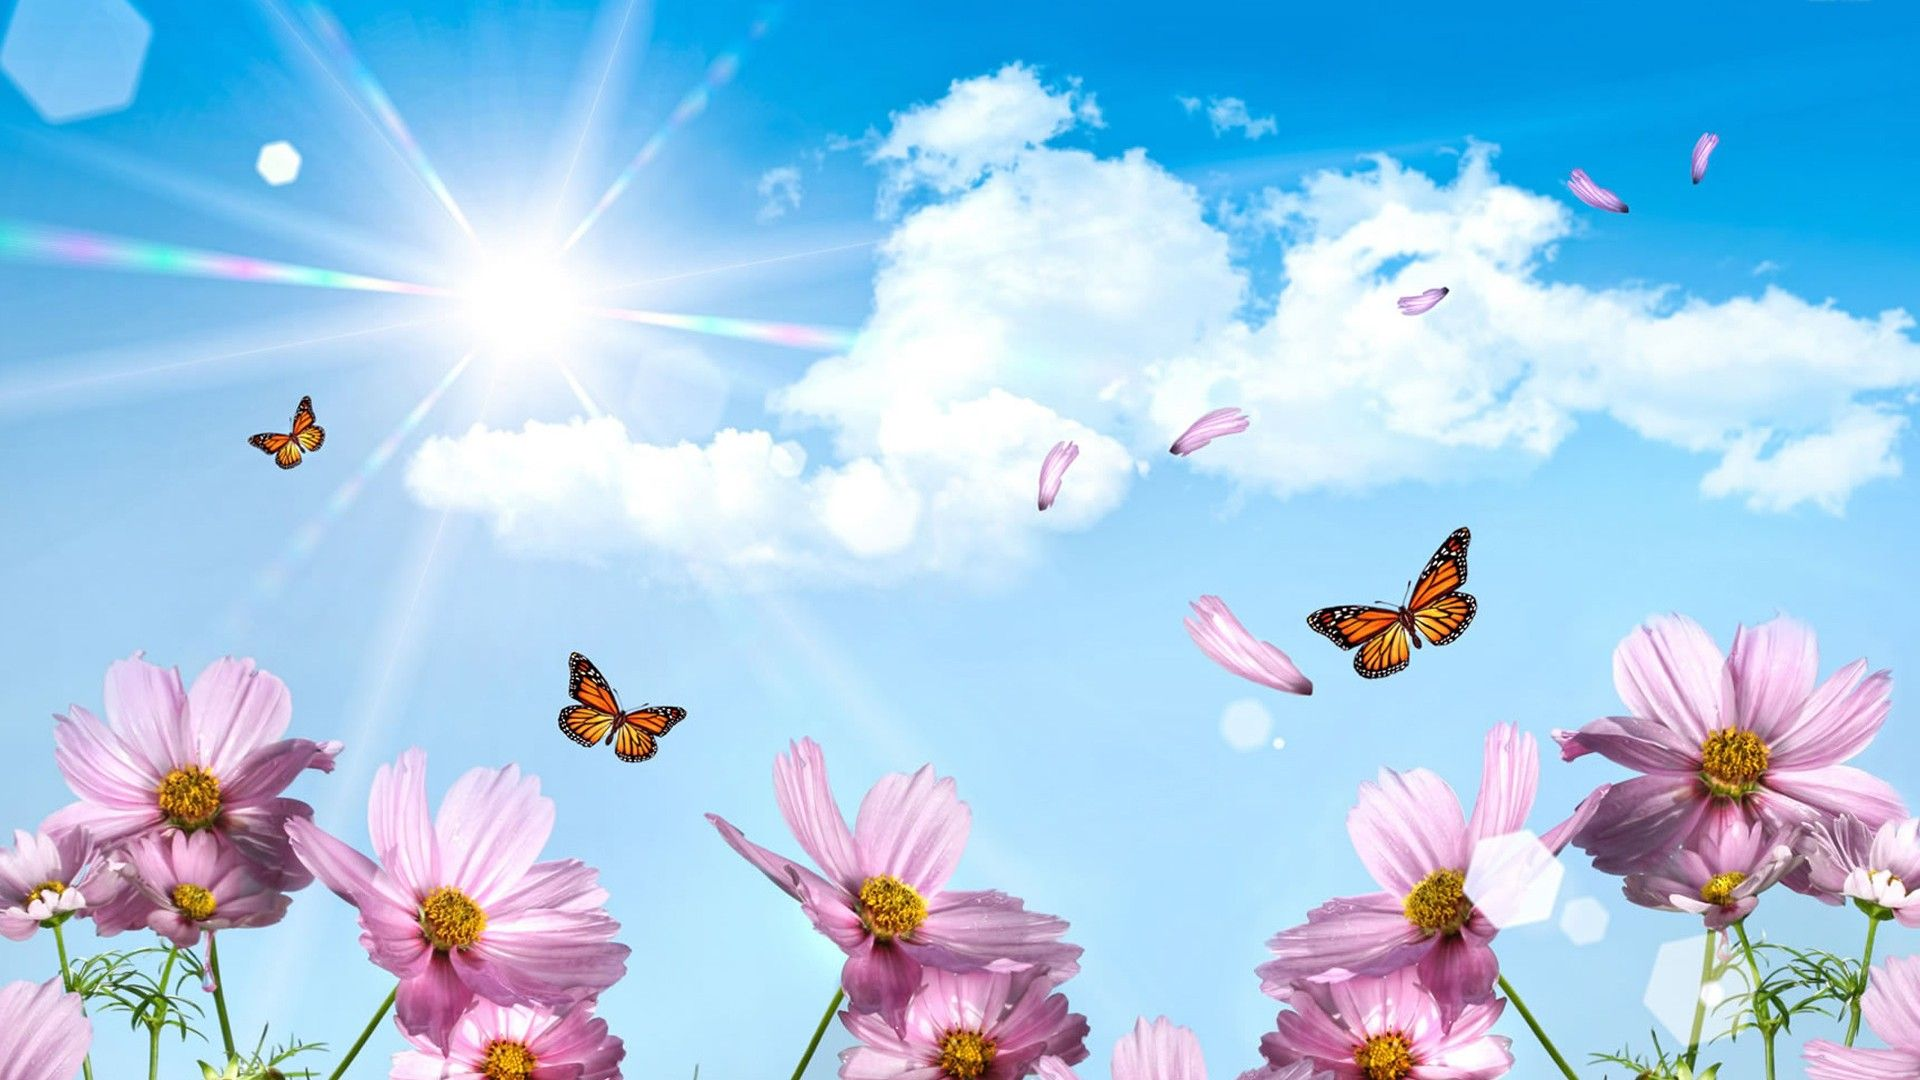 Wallpaper HD Hello Spring Spring wallpaper Butterfly wallpaper 1920x1080